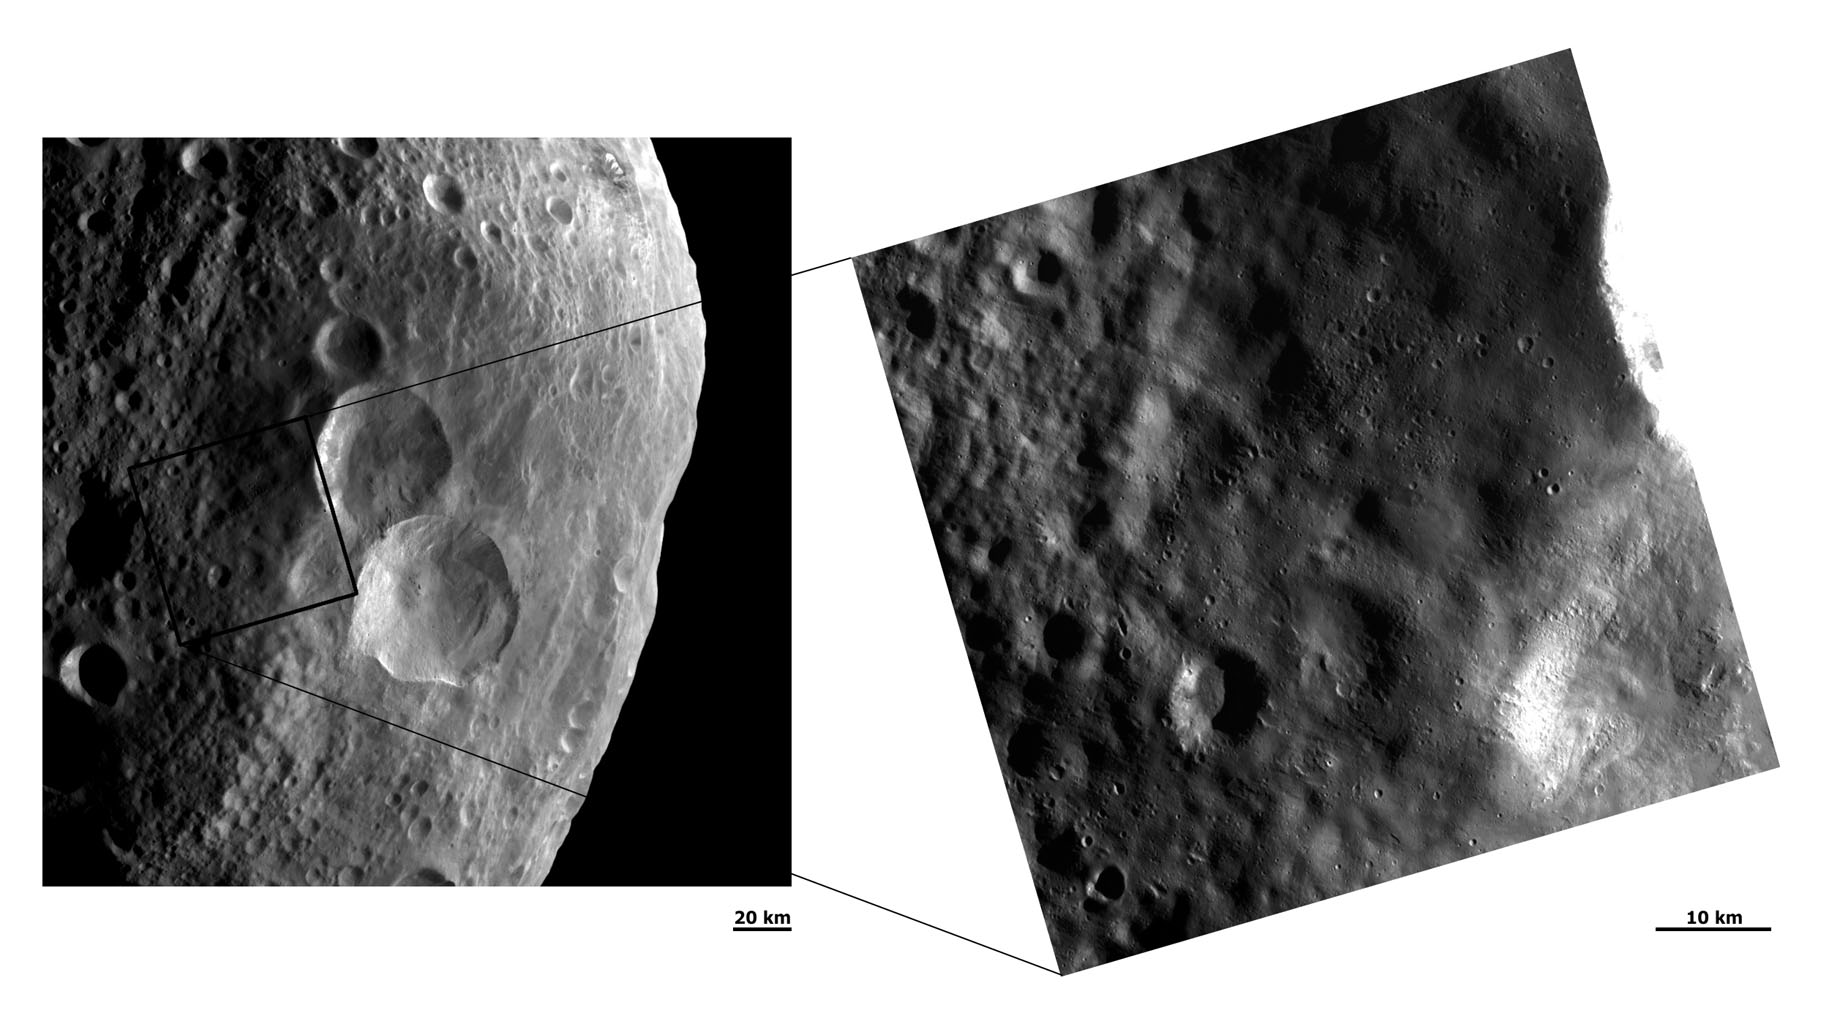 These images from NASA's Dawn spacecraft shows two different resolution views of the ejecta blanket of Vesta's 'snowman craters.' The snowman-like pattern of these craters is clearly seen in the center of the left hand image.